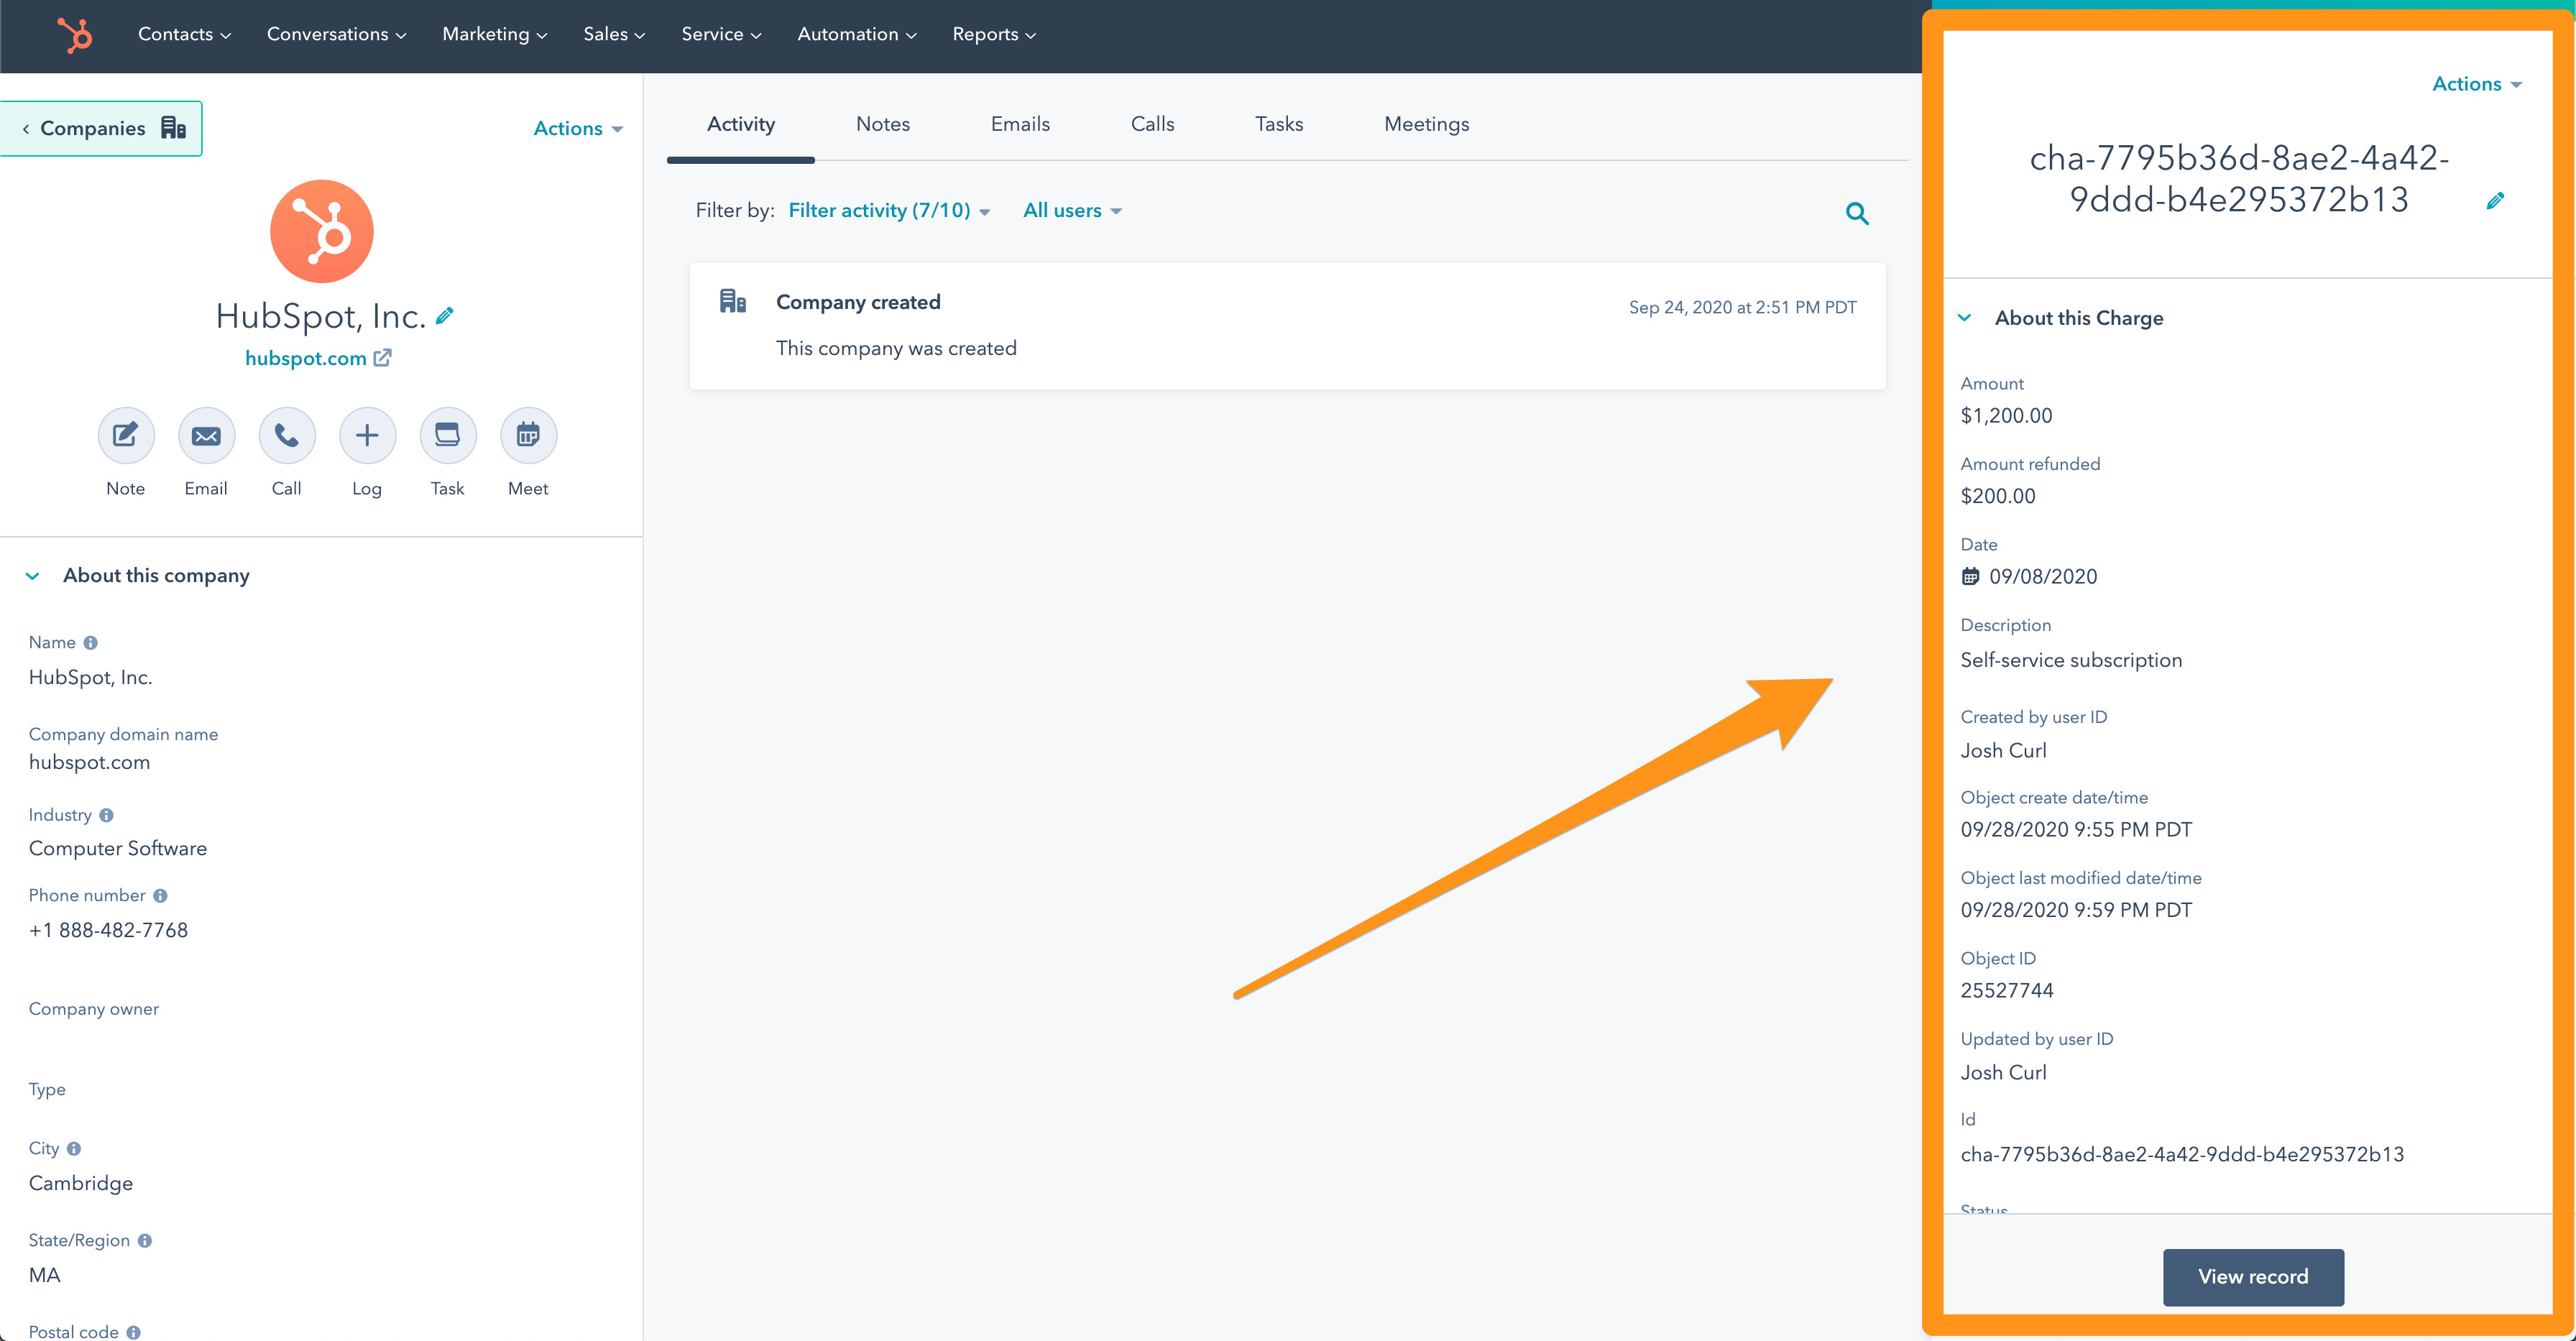 how-to-sync-custom-objects-and-fields-from-your-data-warehouse-to-hubspot 10.png